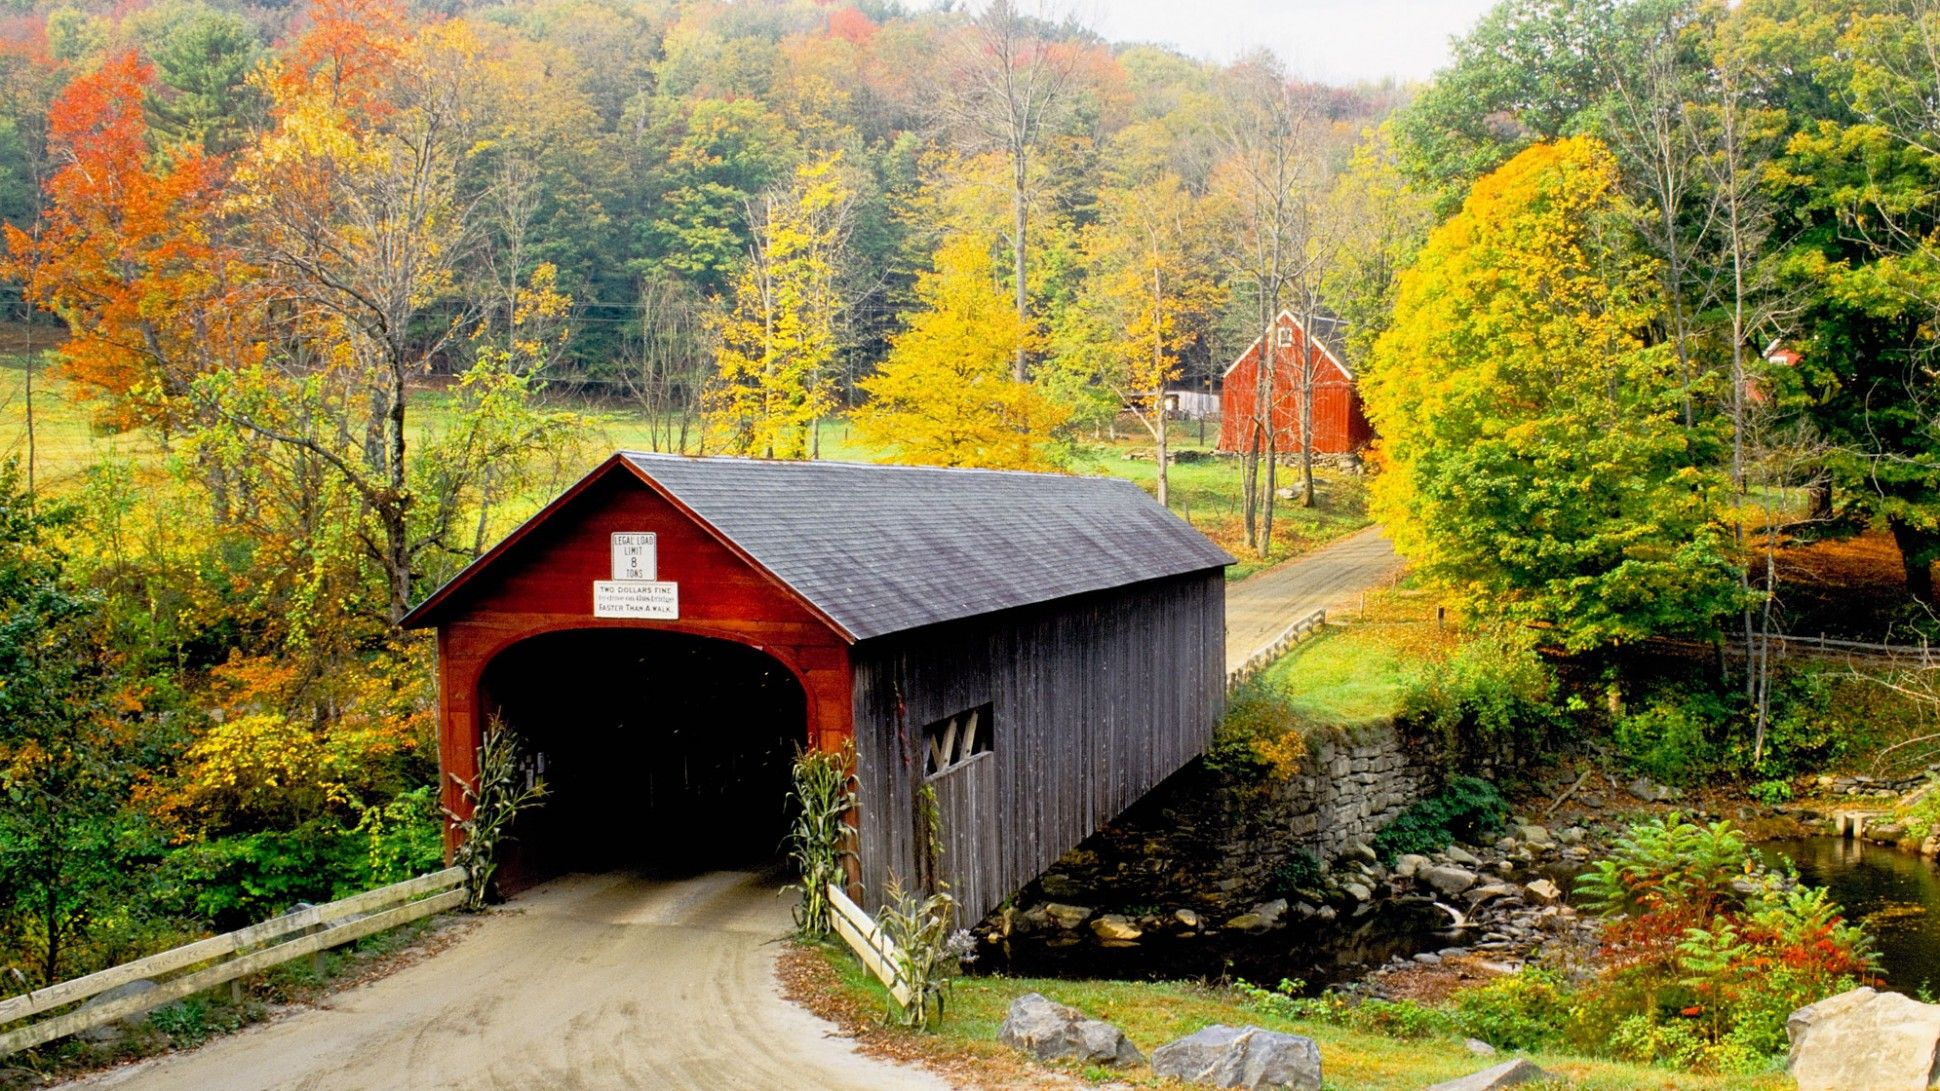 fall foliage drives worth flying for | road trips, autumn desktop